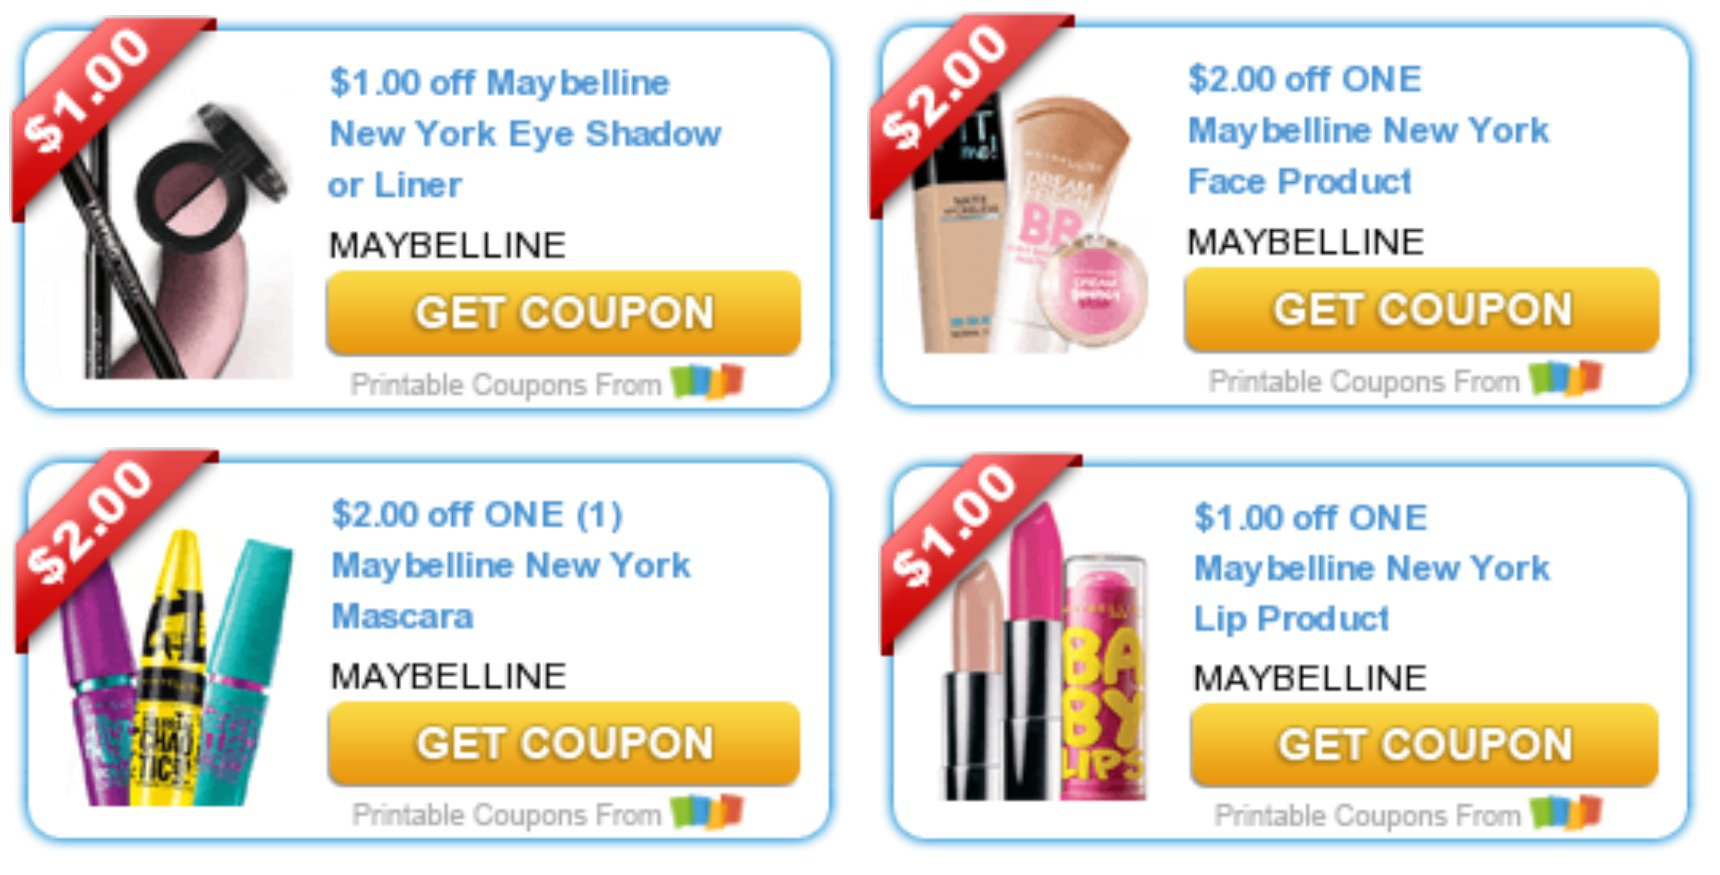 photograph regarding Printable Maybelline Coupons known as 4* Maybelline Discount codes RESET \u003d Incredible Make-up Offers at